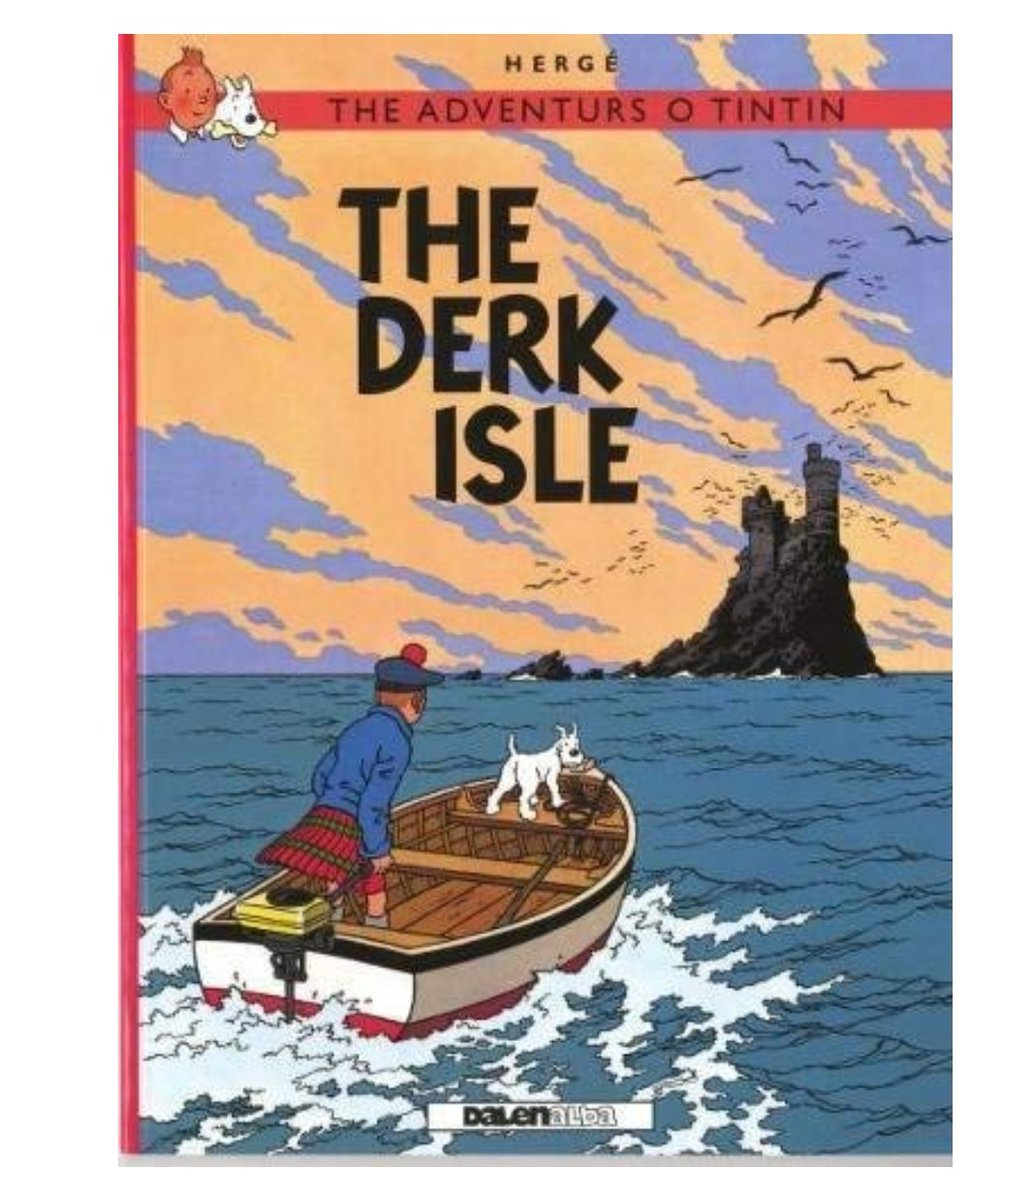 They've translated Tintin into Scots and it's the best thing: